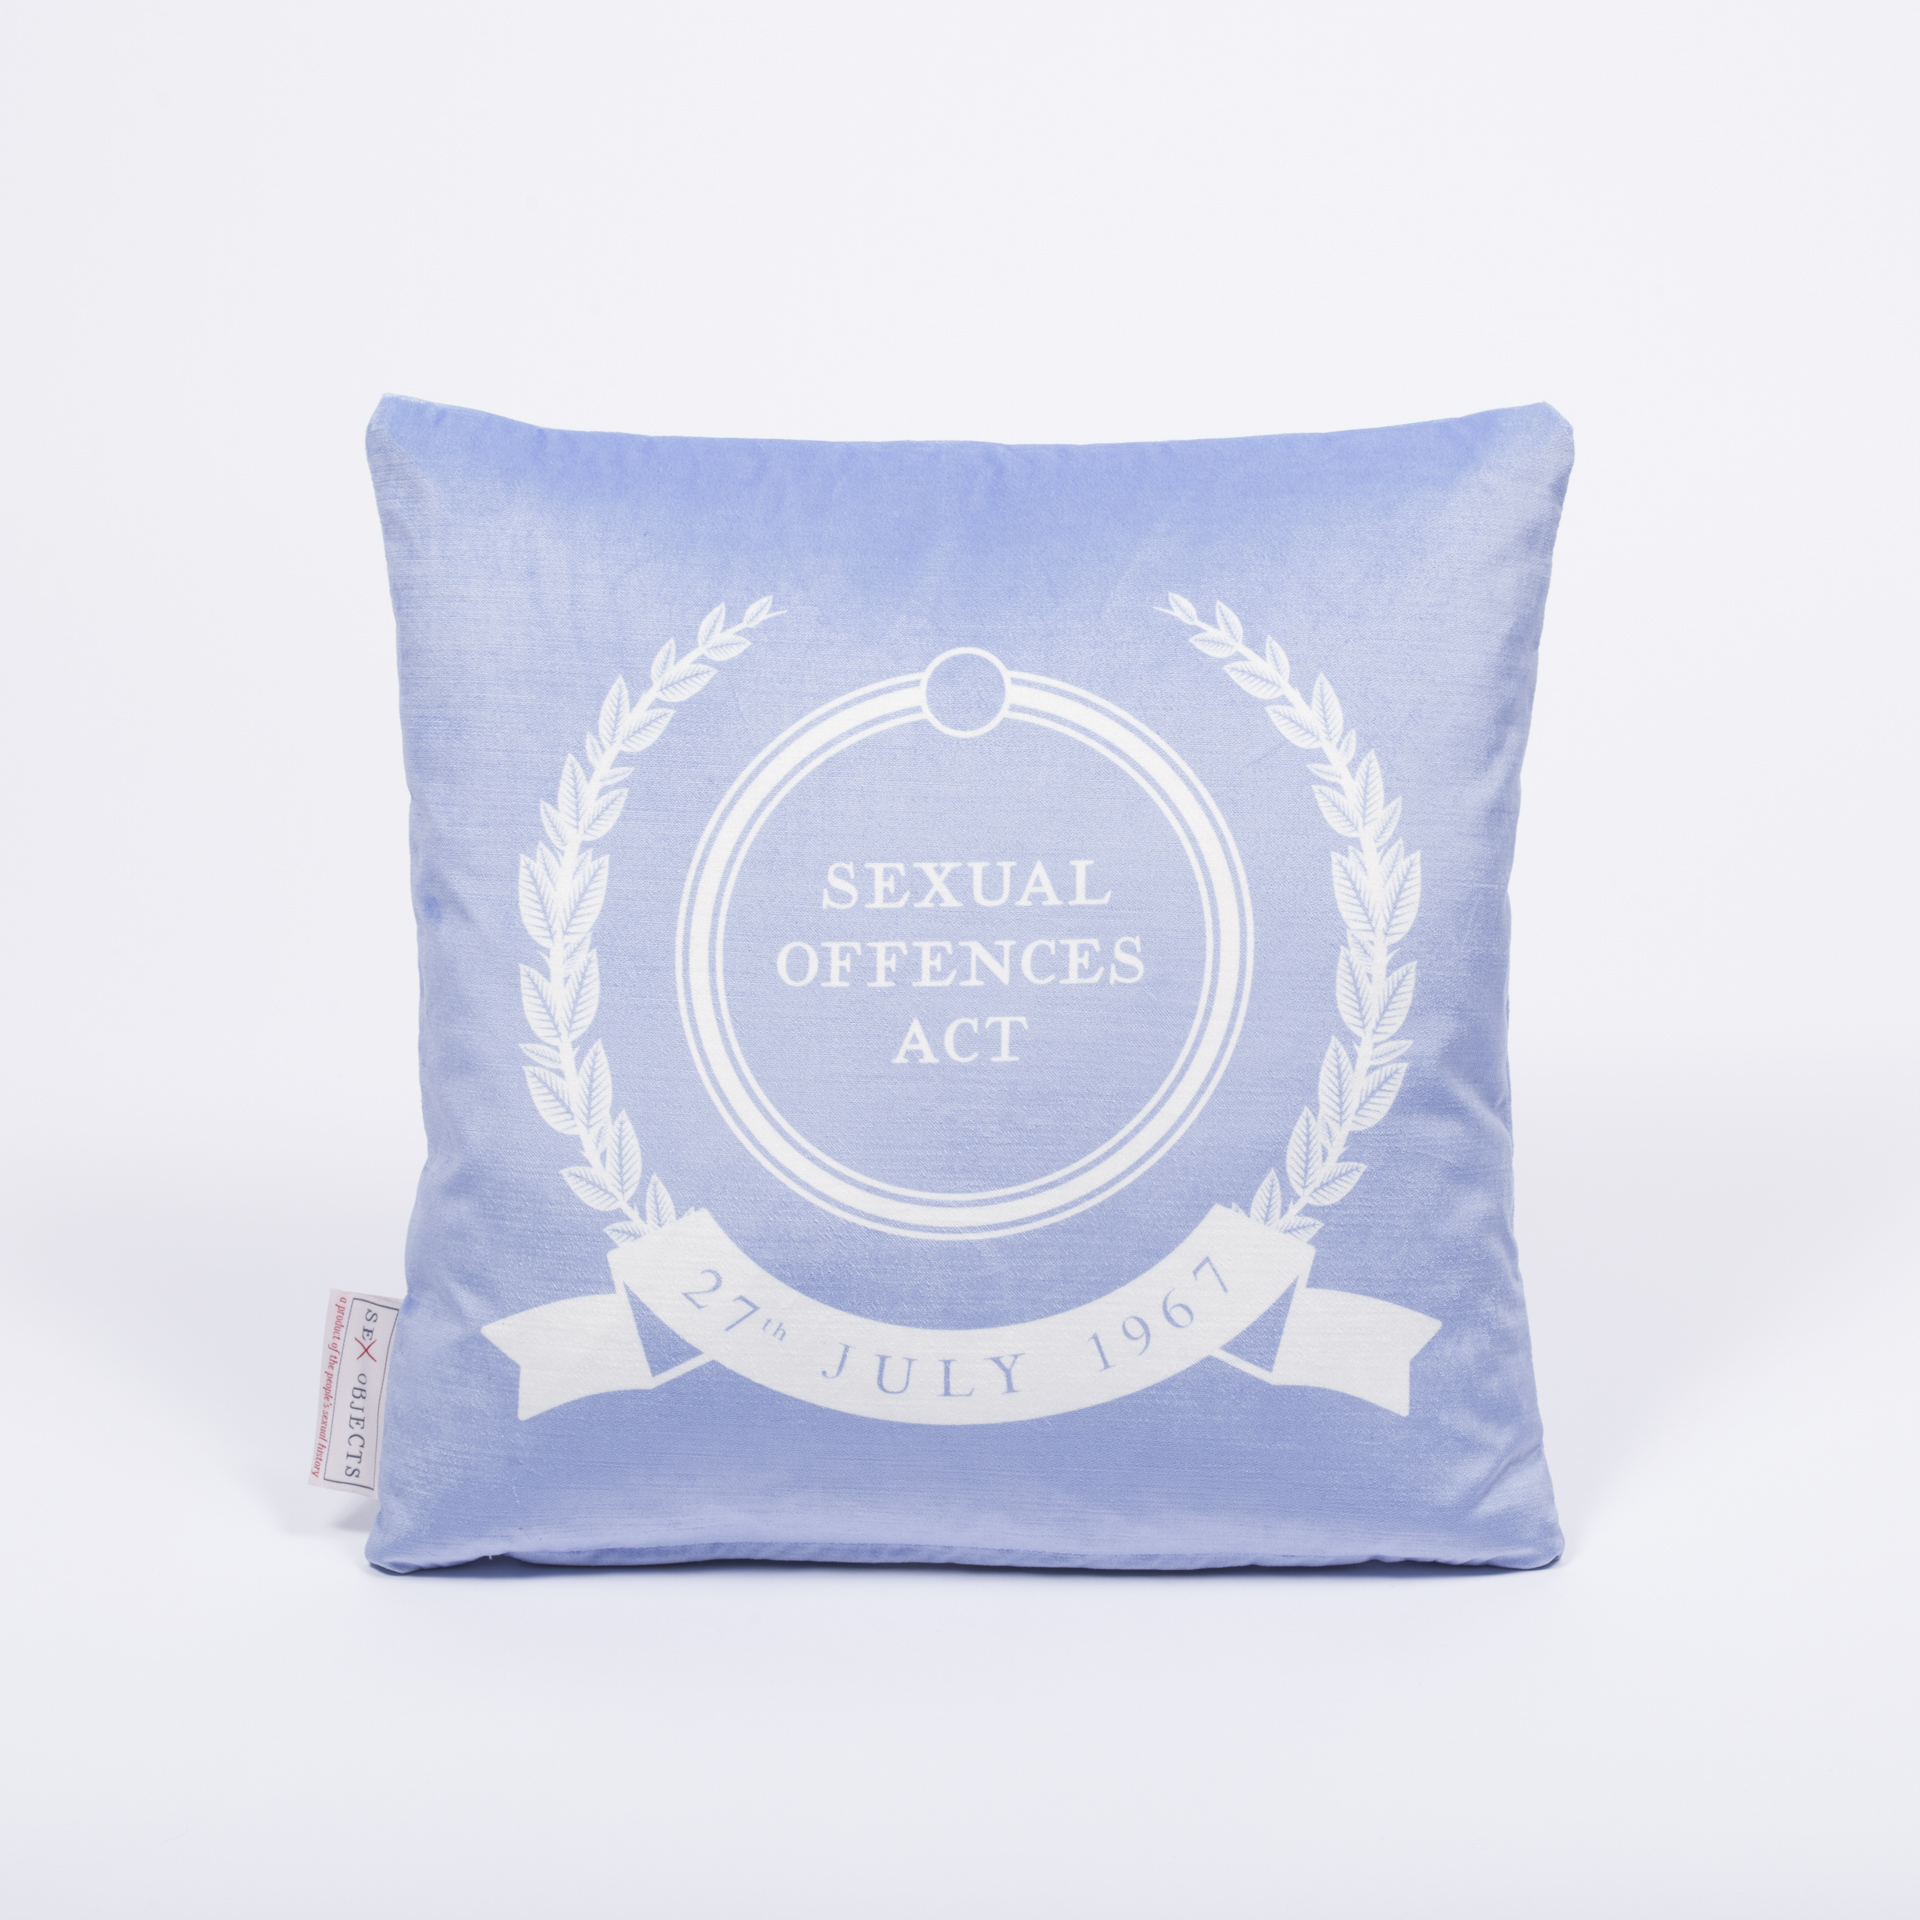 Sexual Offences Act 1967   velvet cushion   Sex Objects